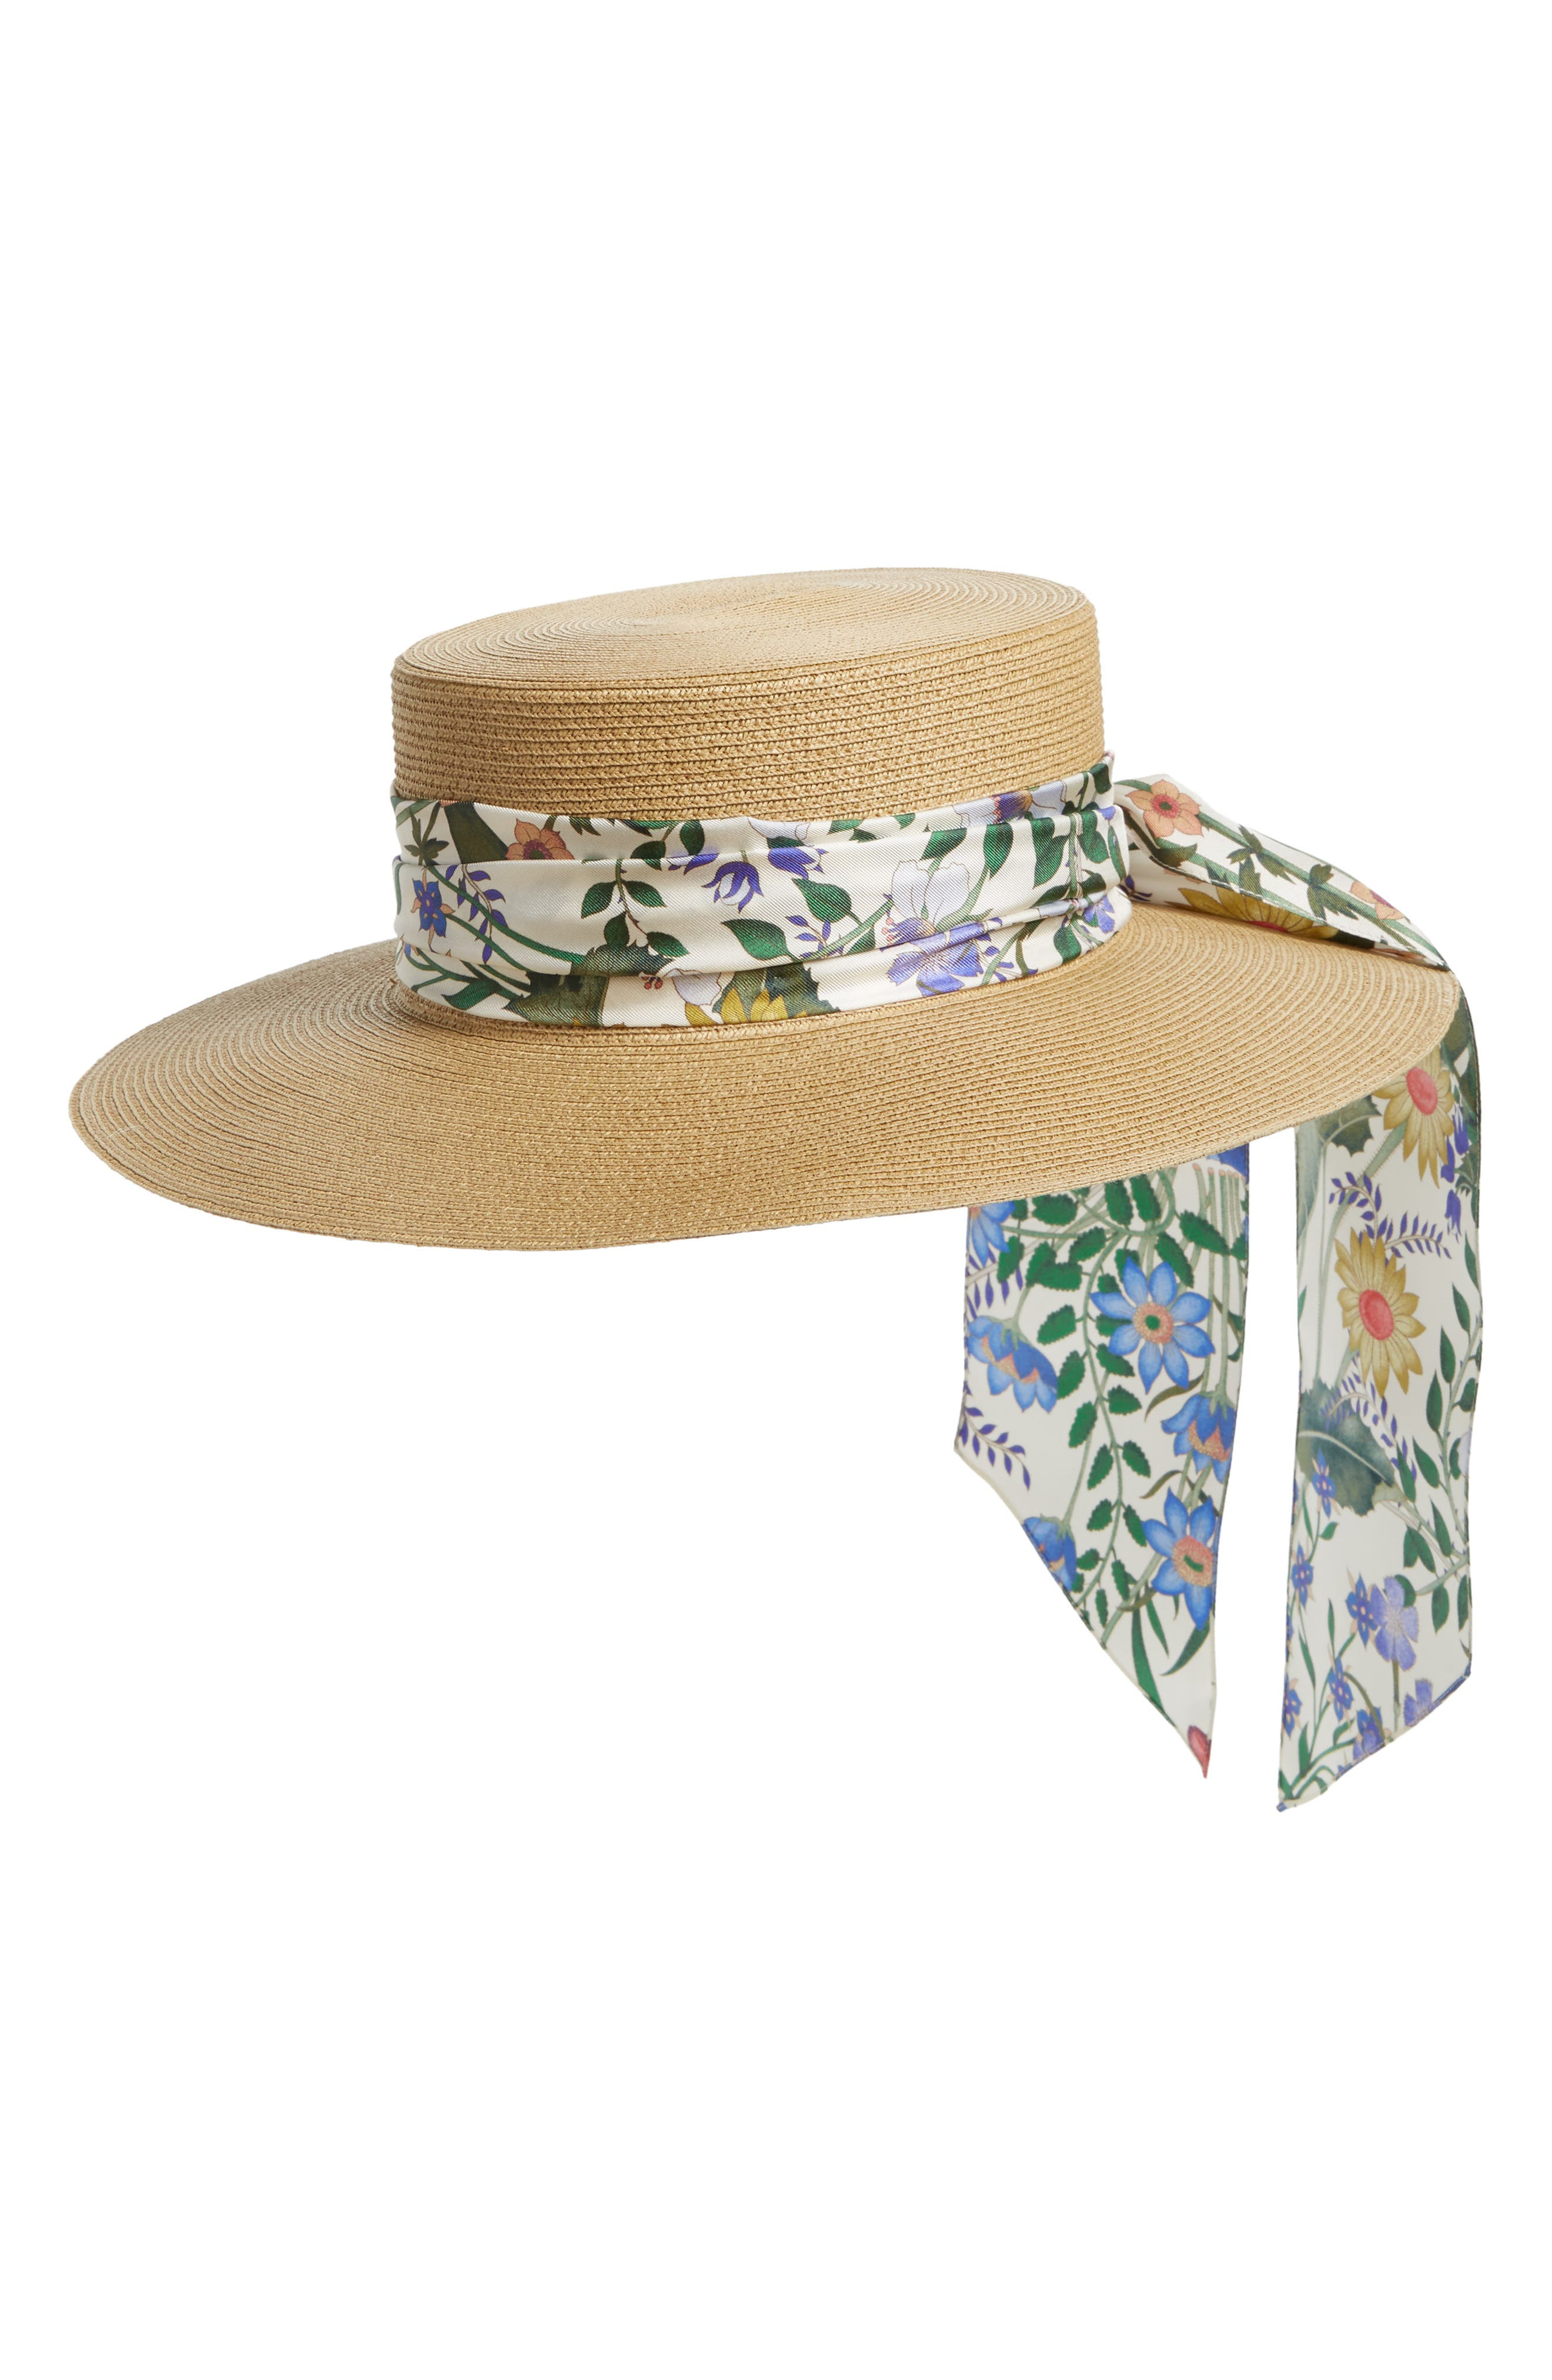 Alba Straw Hat,                         Main,                         color, ROPE/ WHITE